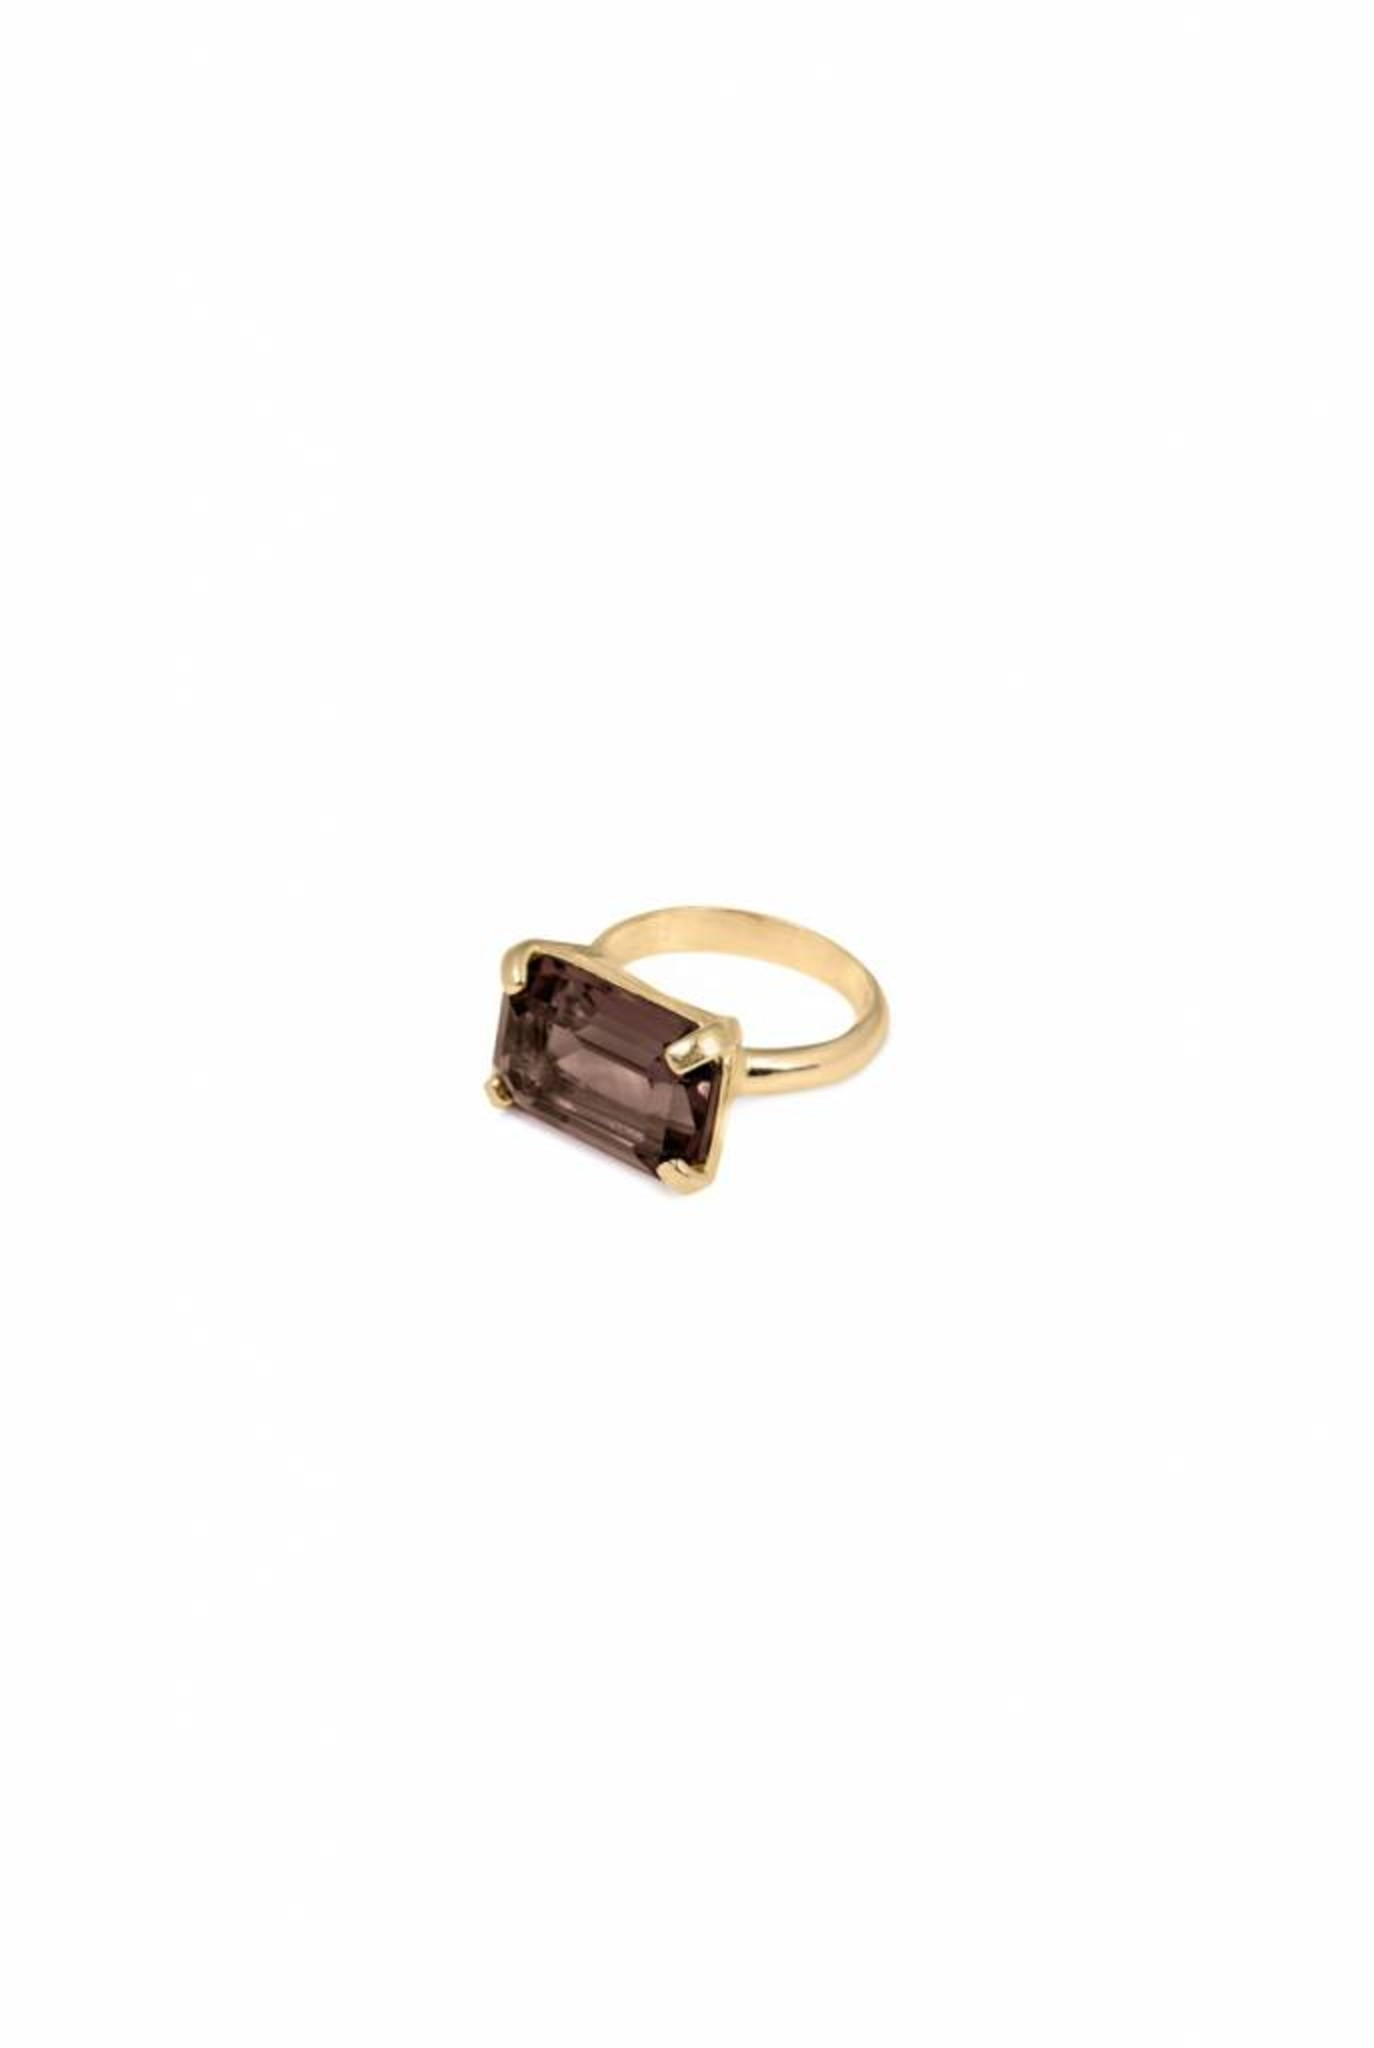 Ring goldplated rectangle smoky quartz